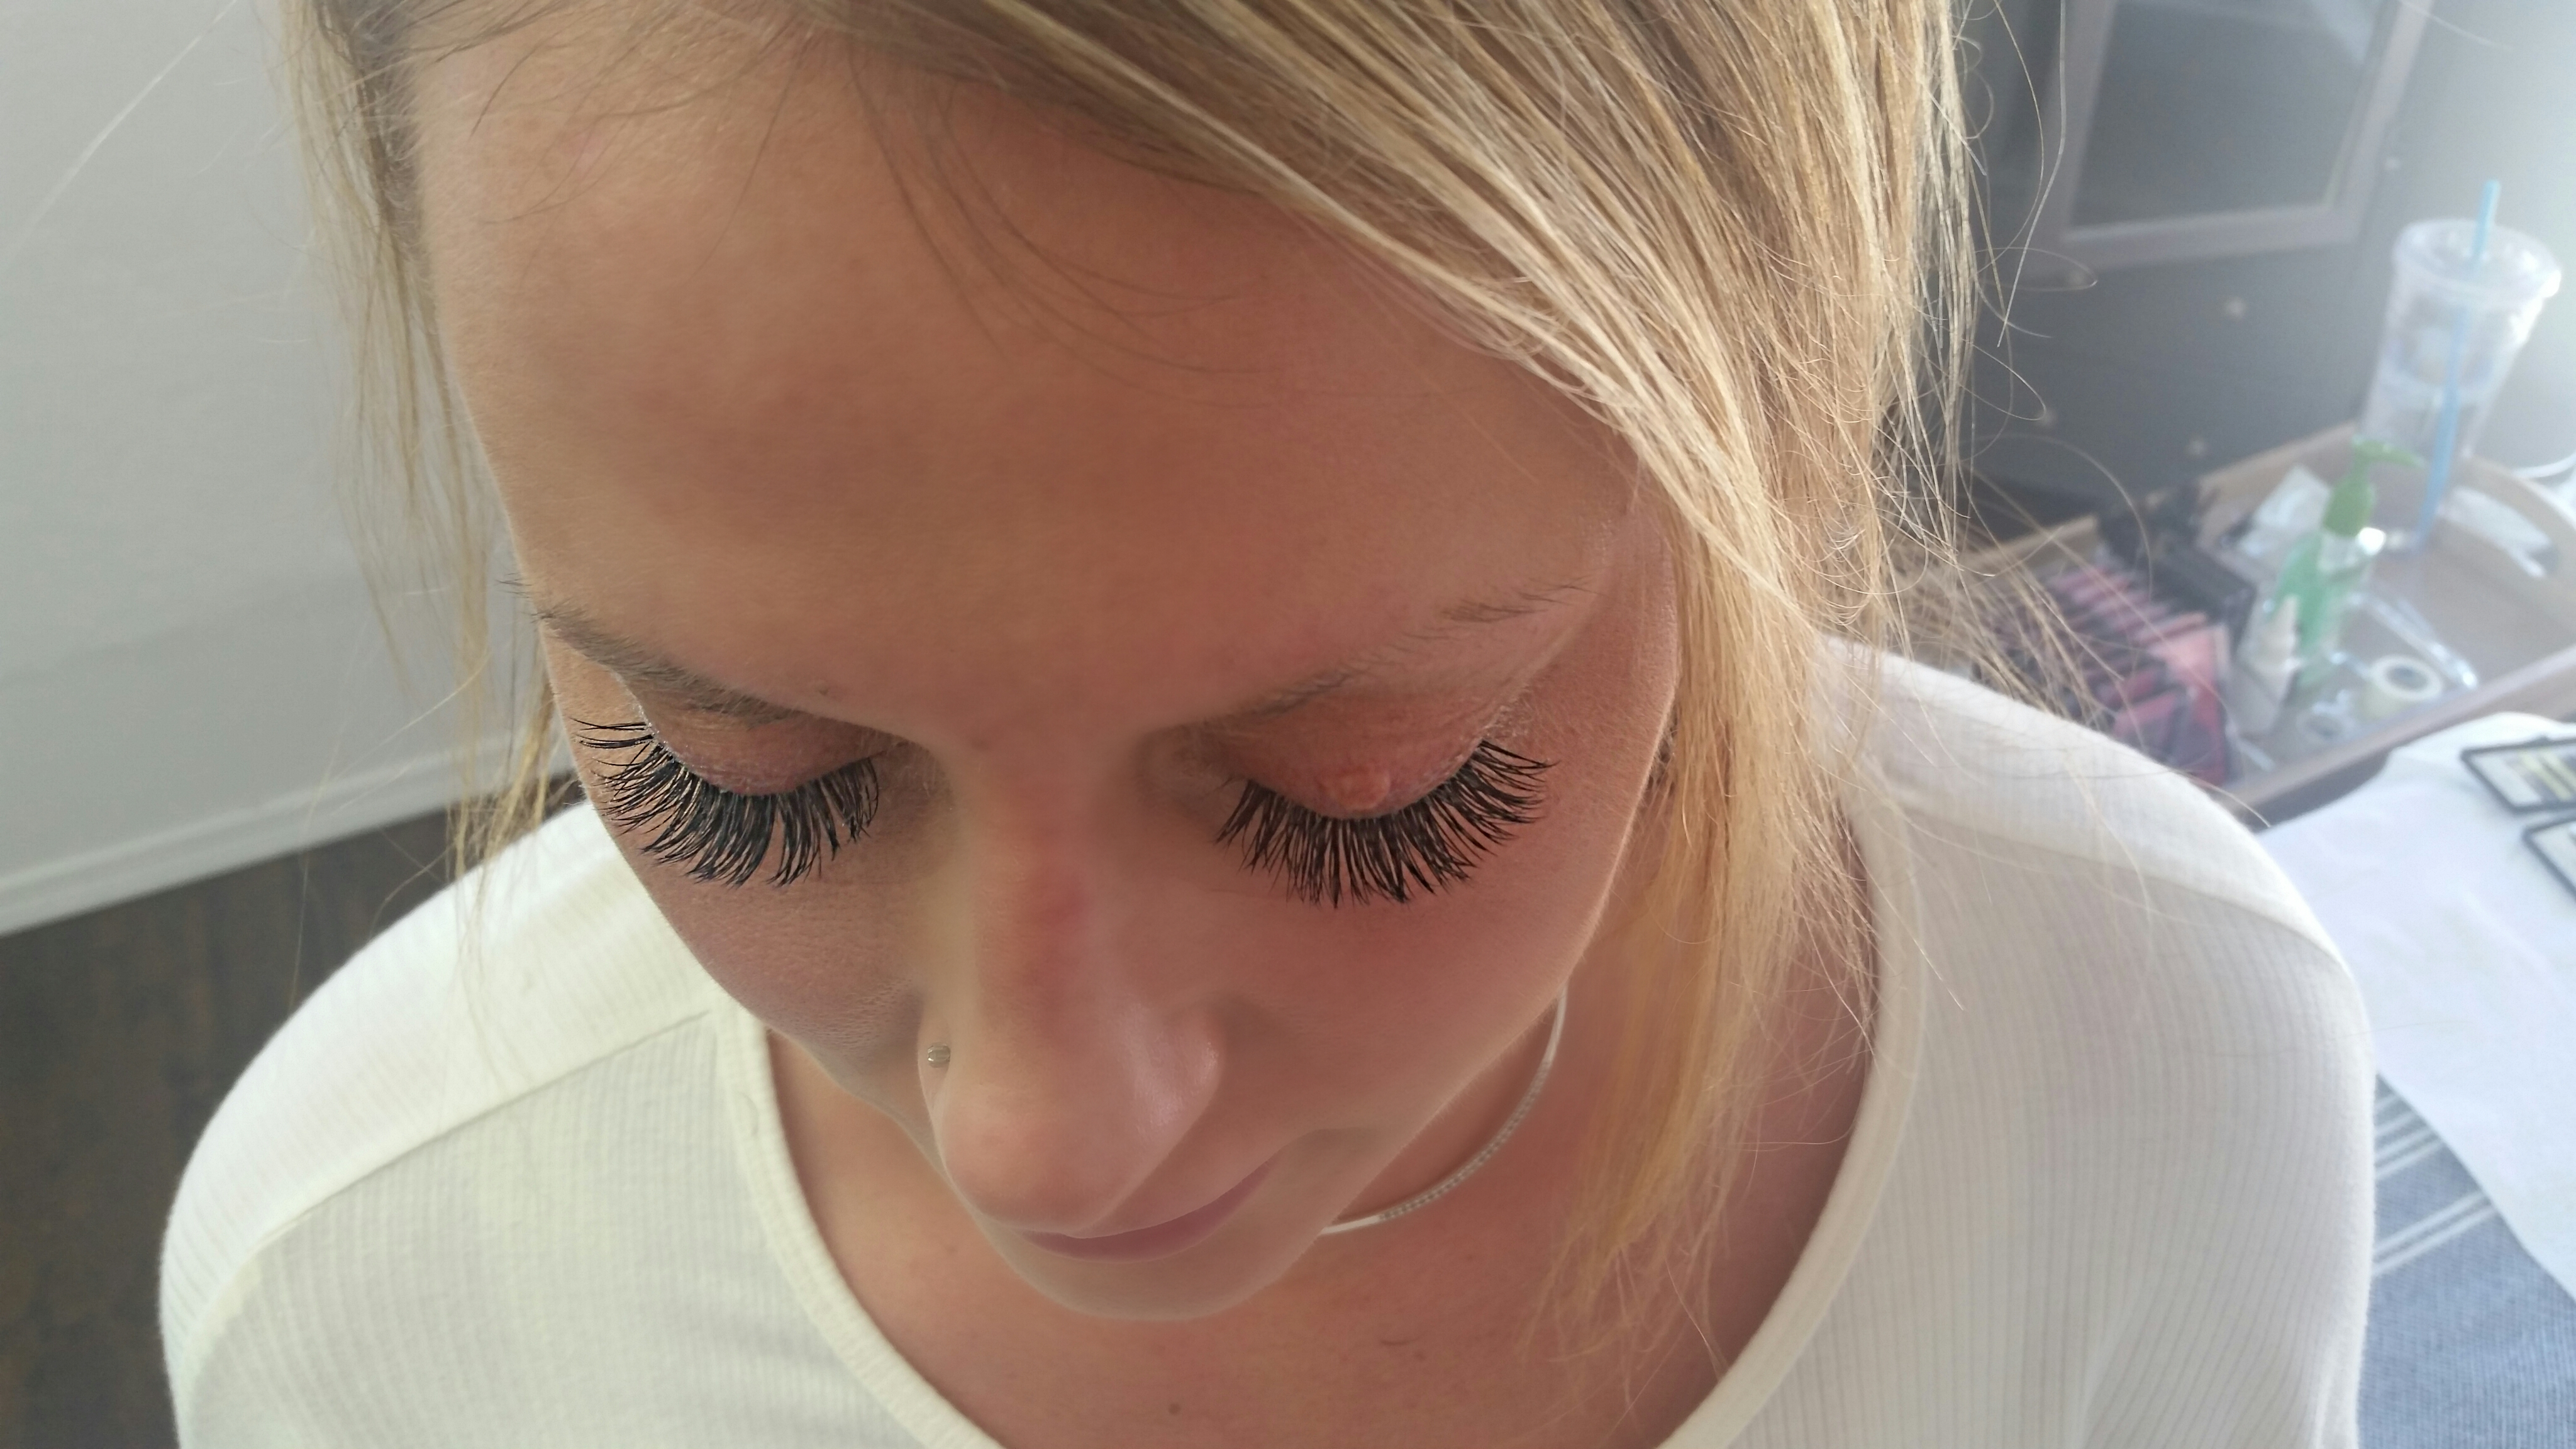 Lashes for all!